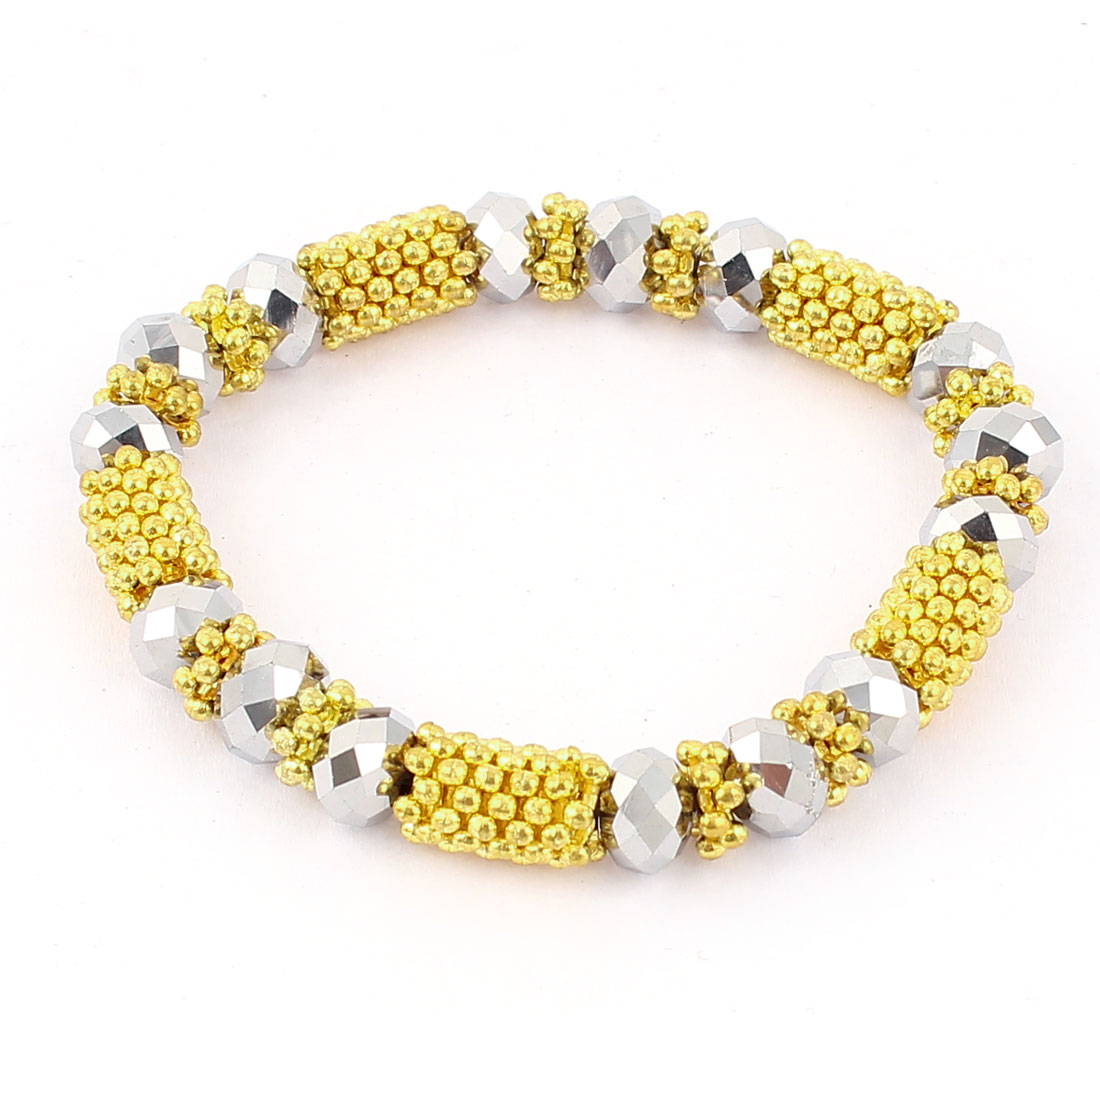 Women Metal Decor Plastic Crystal Beads Linked Bracelet Yellow Silver Tone